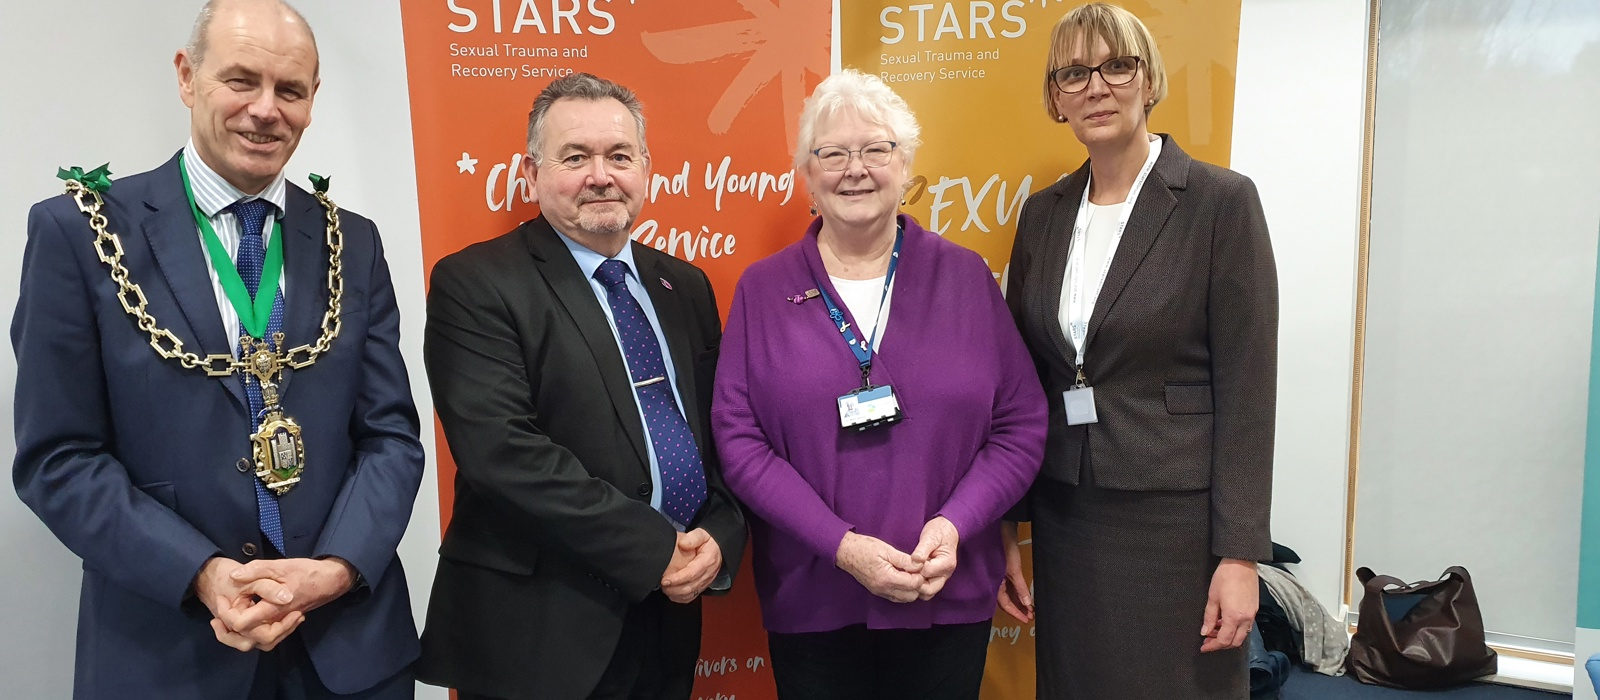 STARS Dorset to open a new centre in West Dorset